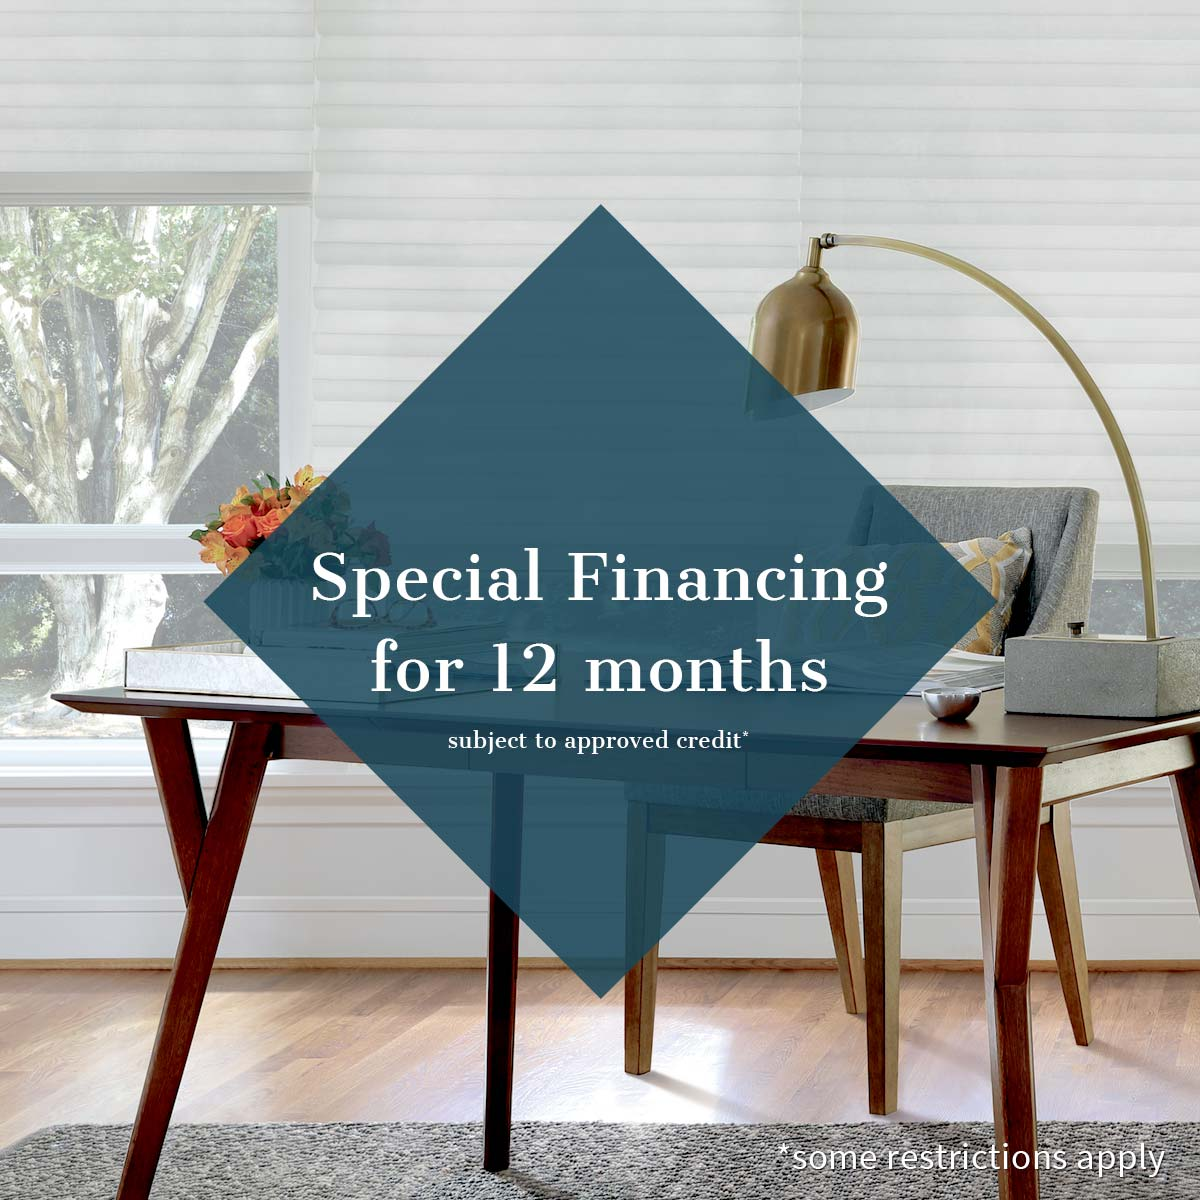 special financing for 12 months subject to approved credit some restrictions apply